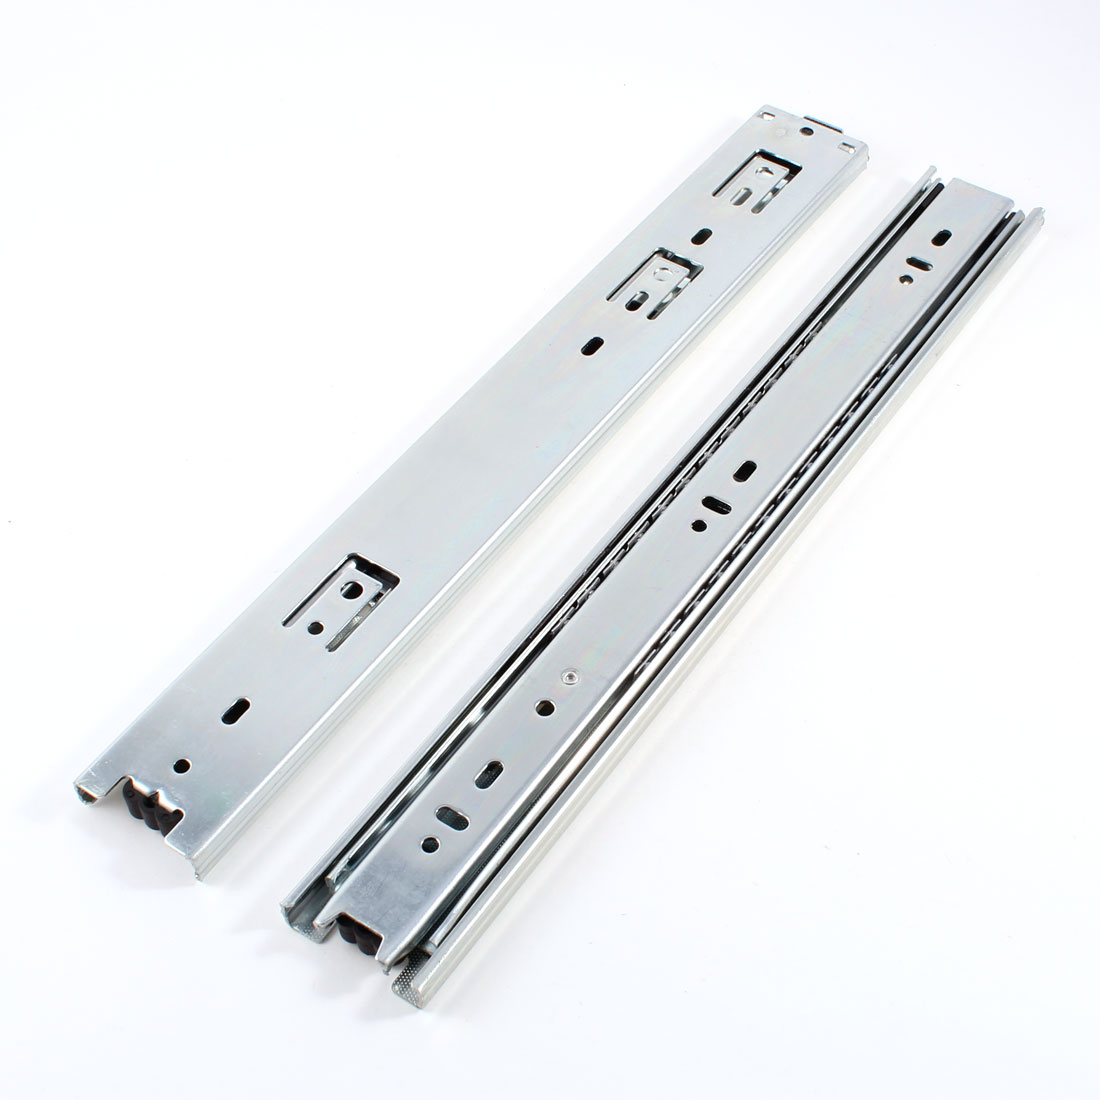 "2 Pcs Silver Tone 3 Sections Extended Drawer Slides Rail 45mm Wide 13.7"" Long"